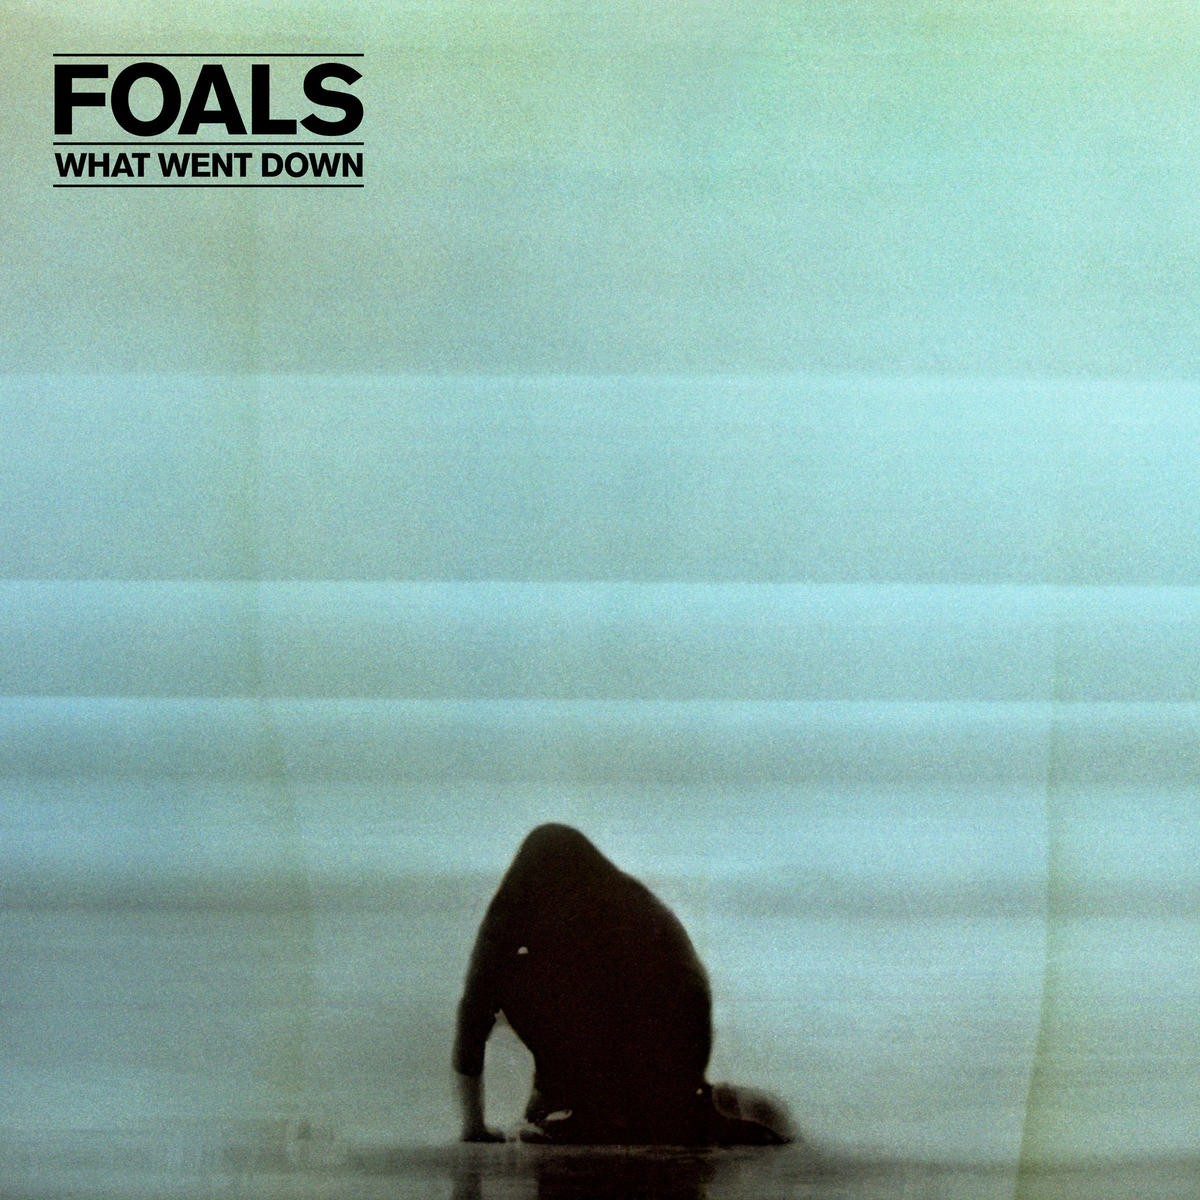 Foals - What Went Down CD - WBCD 2350